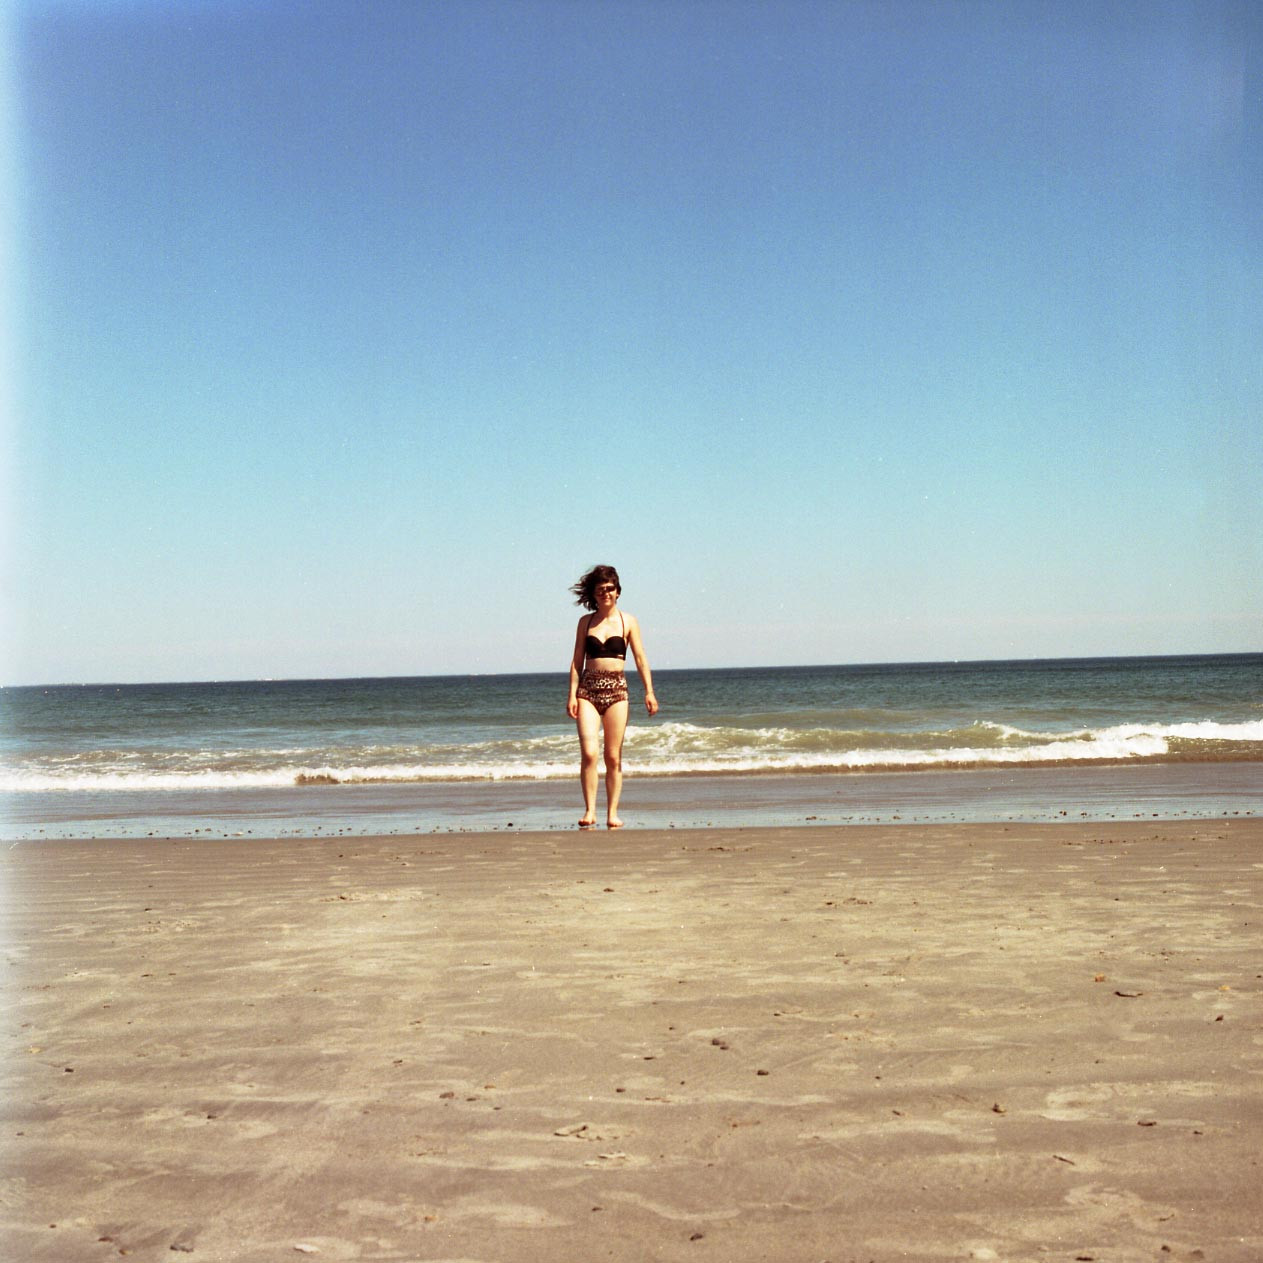 suze at beach